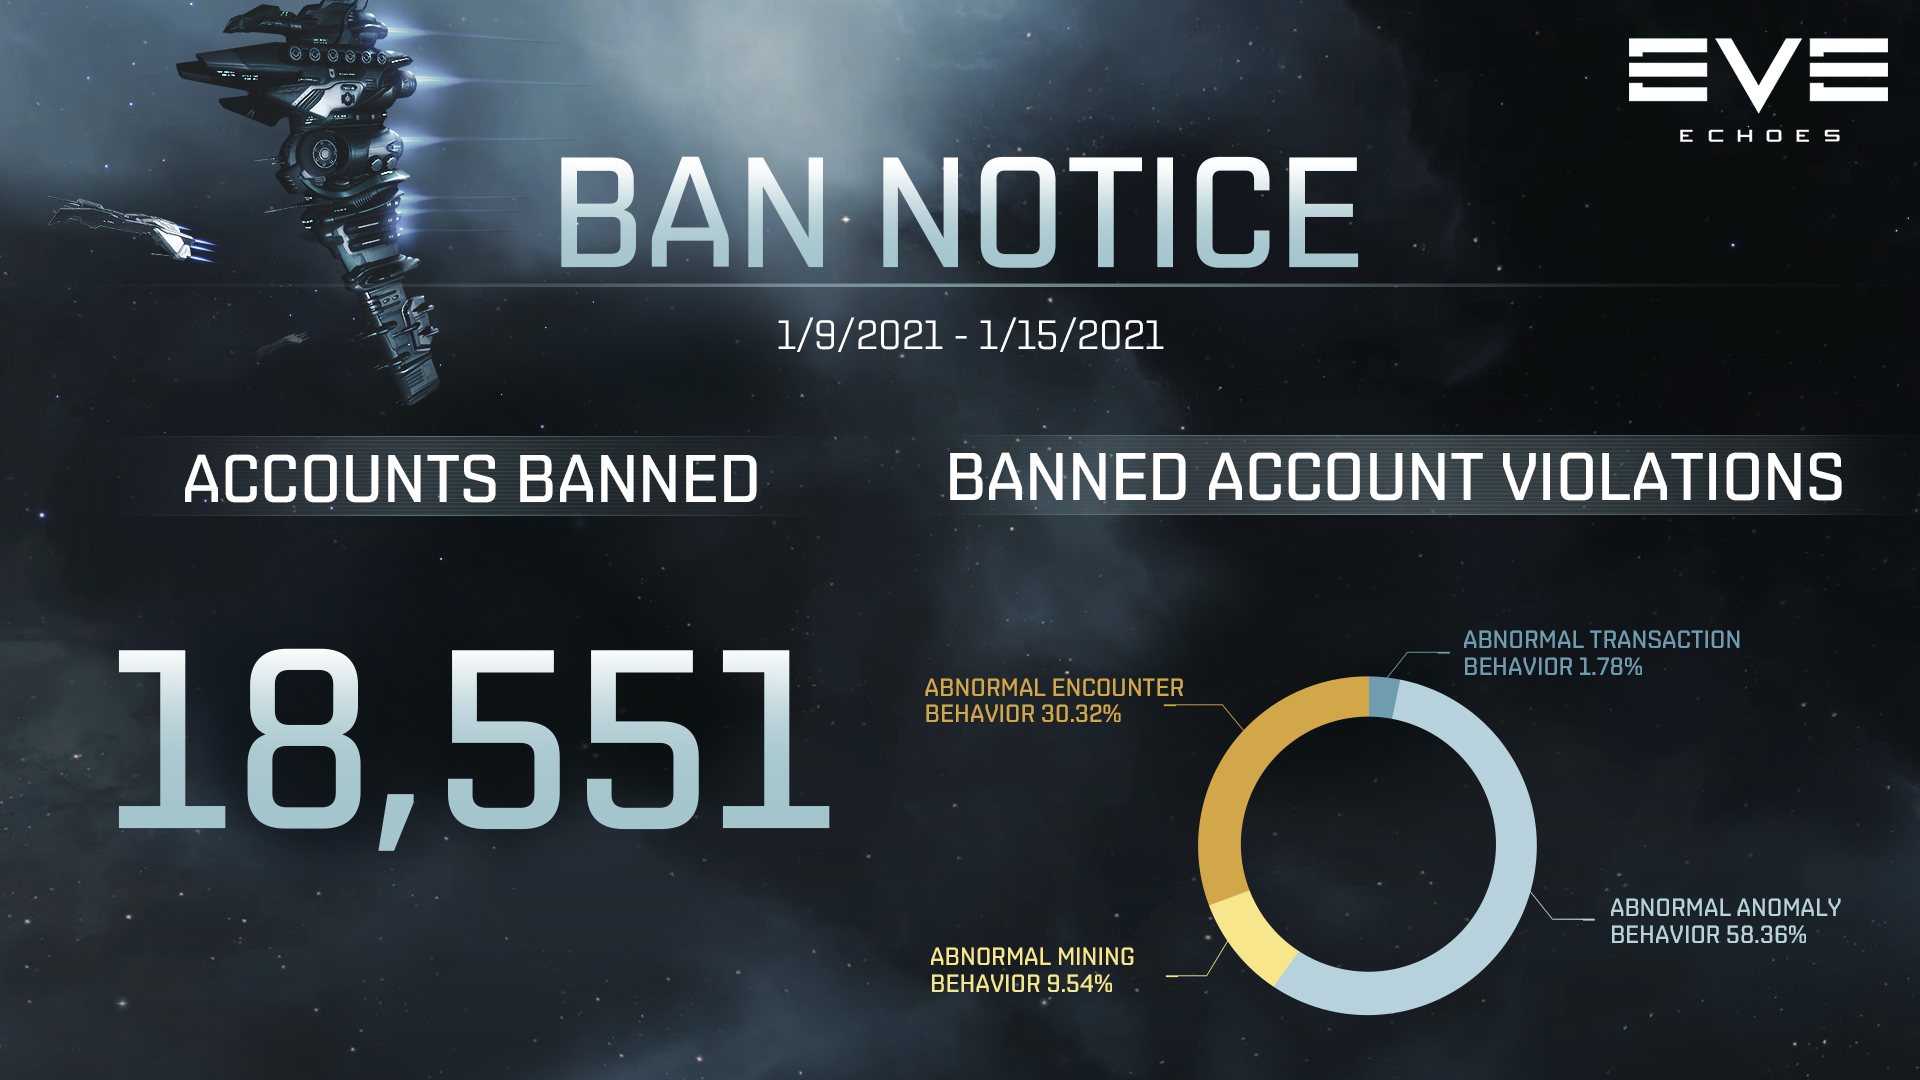 Ban Notice for 01/09-01/15